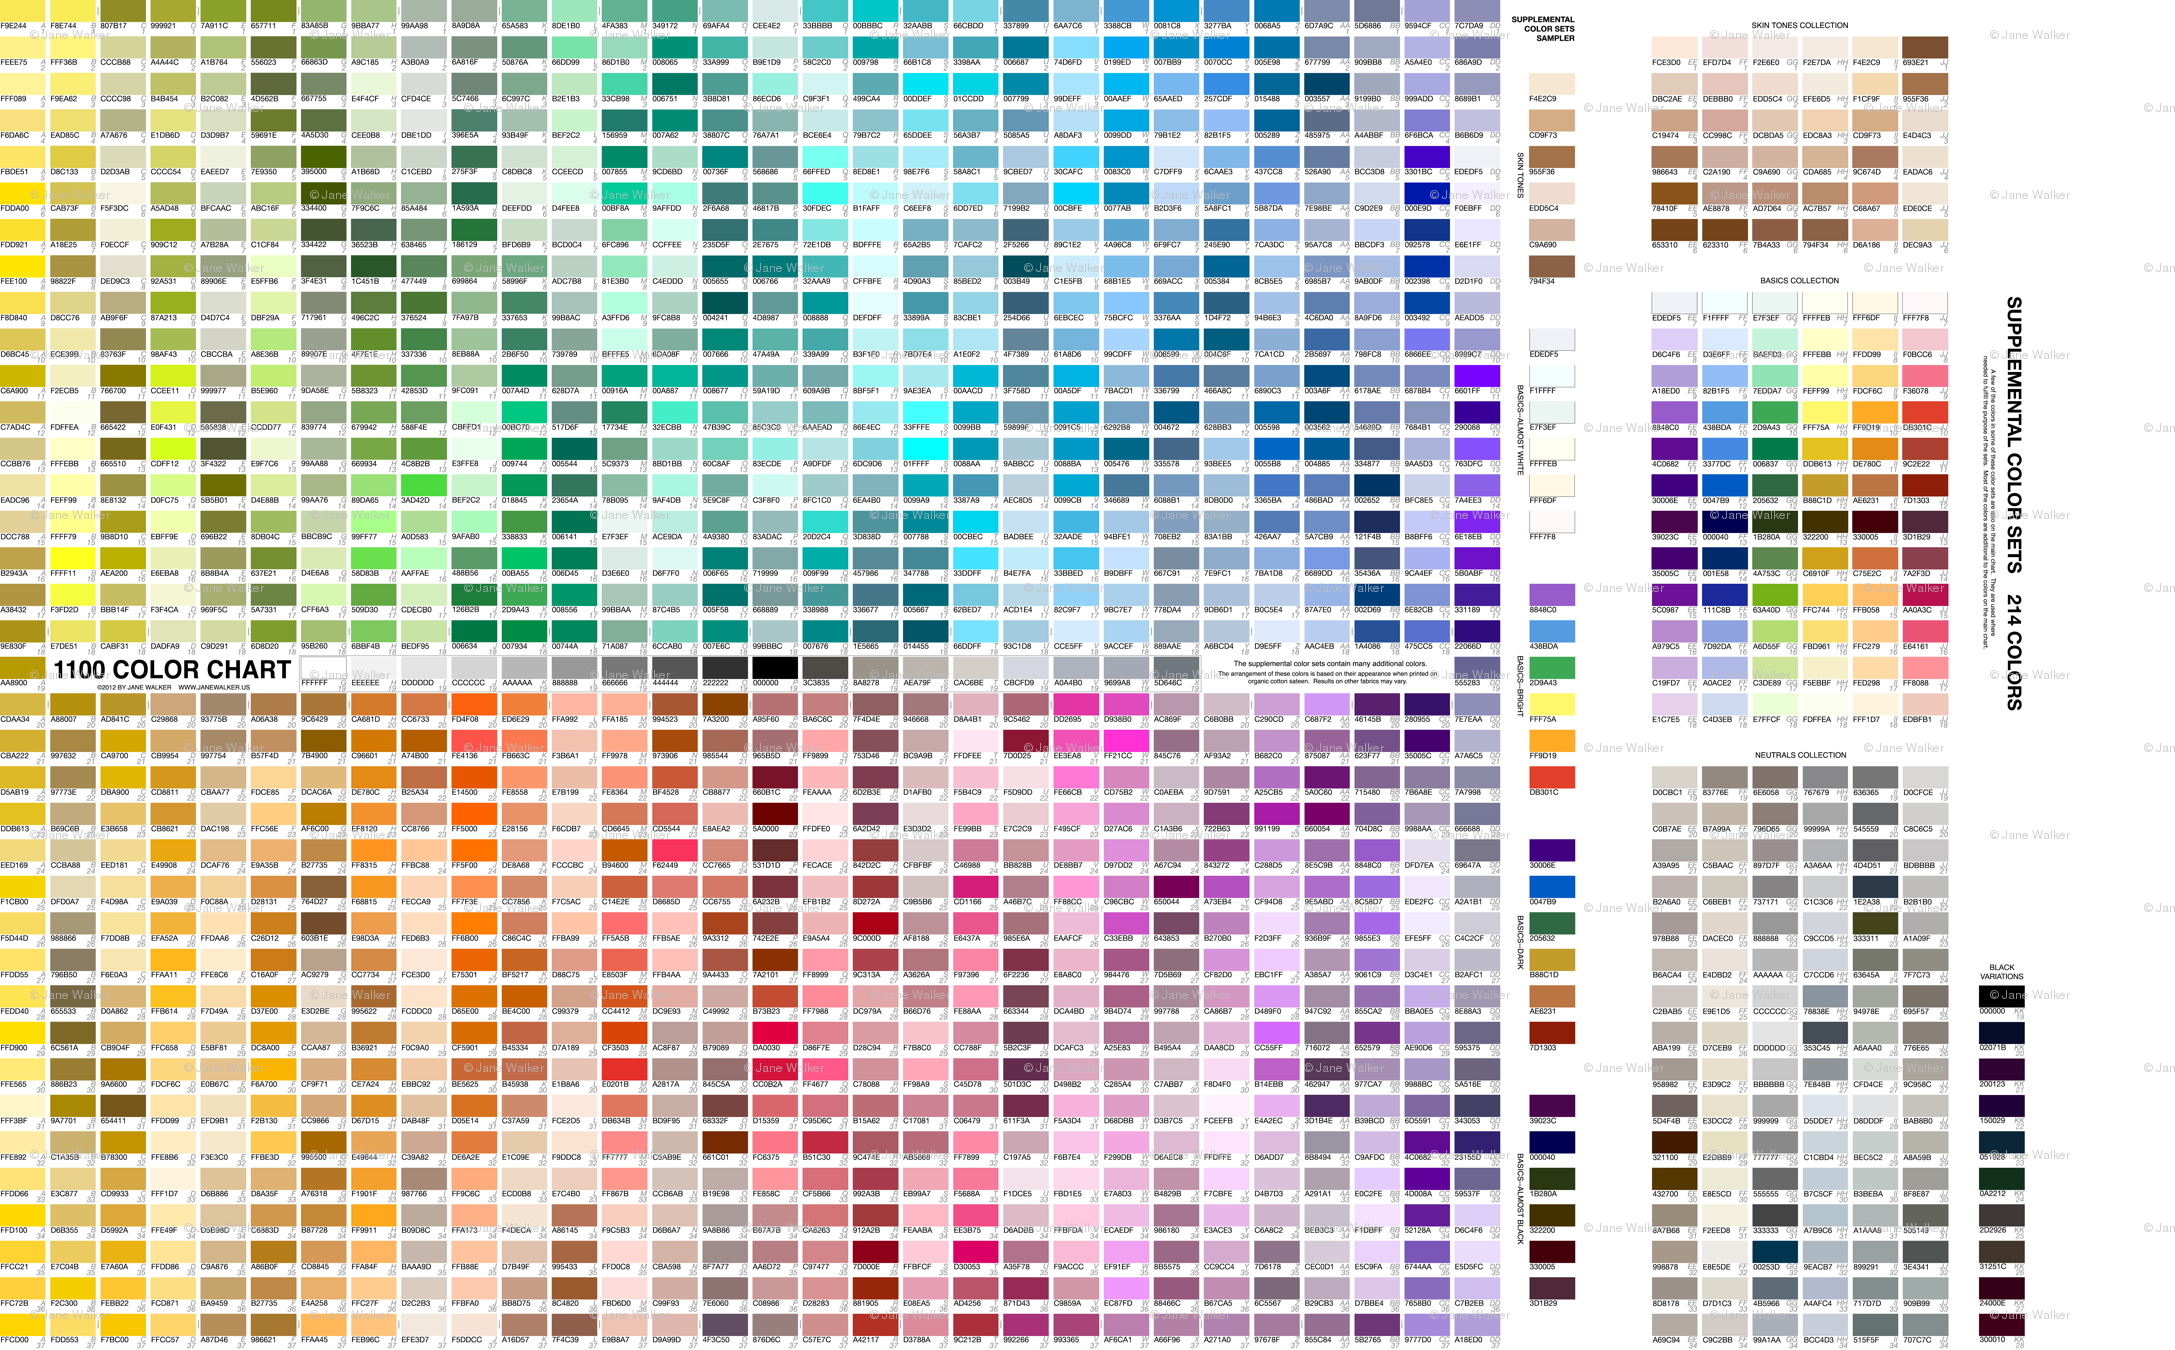 Practical 1100 color chart with supplemental color sets 2012 by practical 1100 color chart with supplemental color sets 2012 by jane walker fabric artbyjanewalker spoonflower geenschuldenfo Image collections